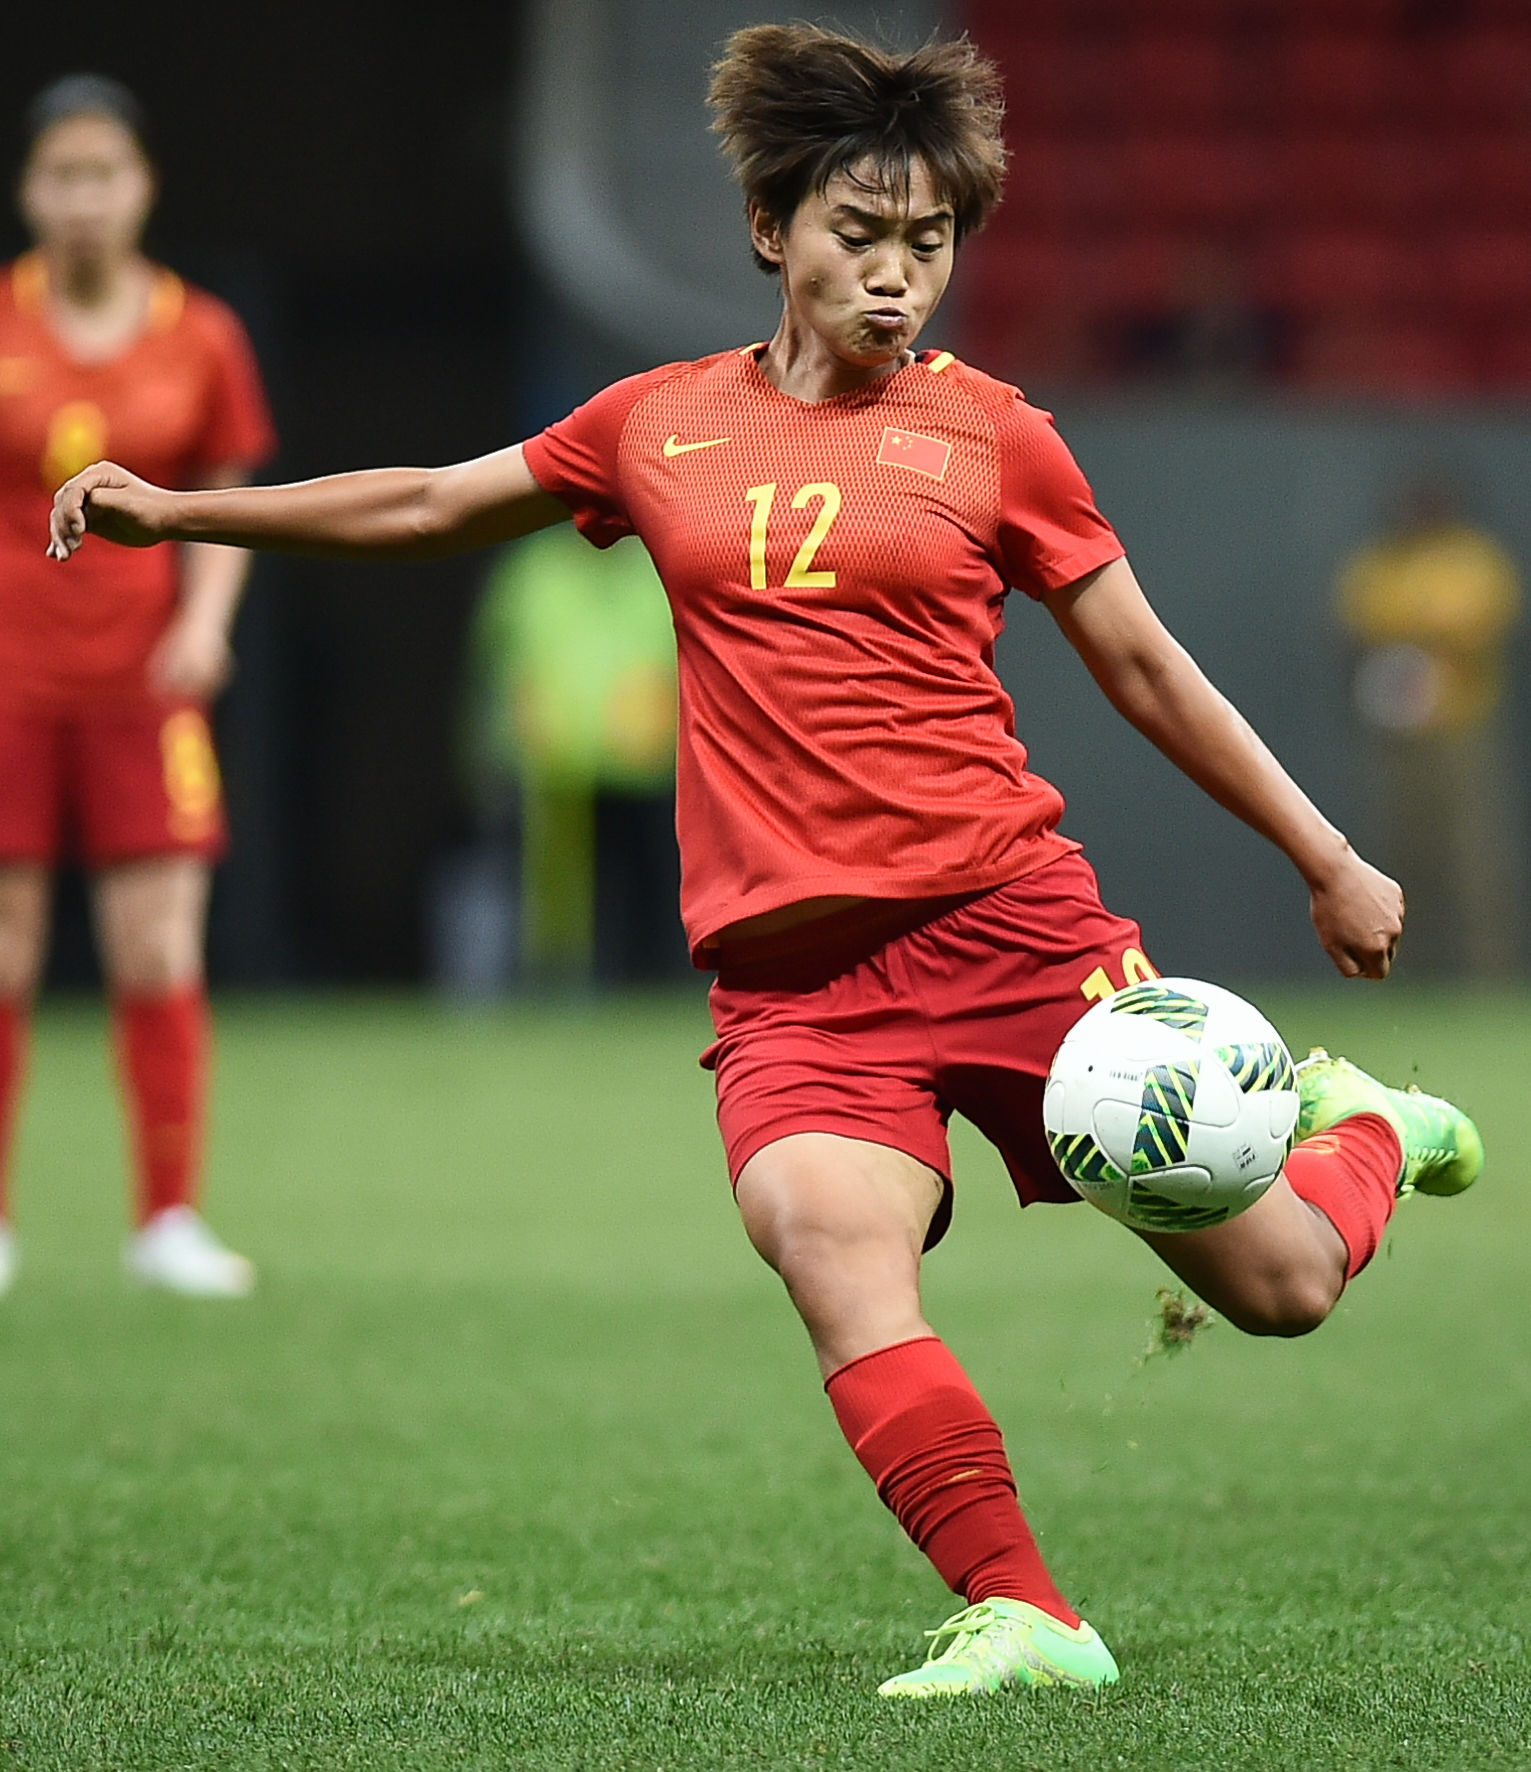 Photo of Wang Shuang (footballer): Chinese soccer player